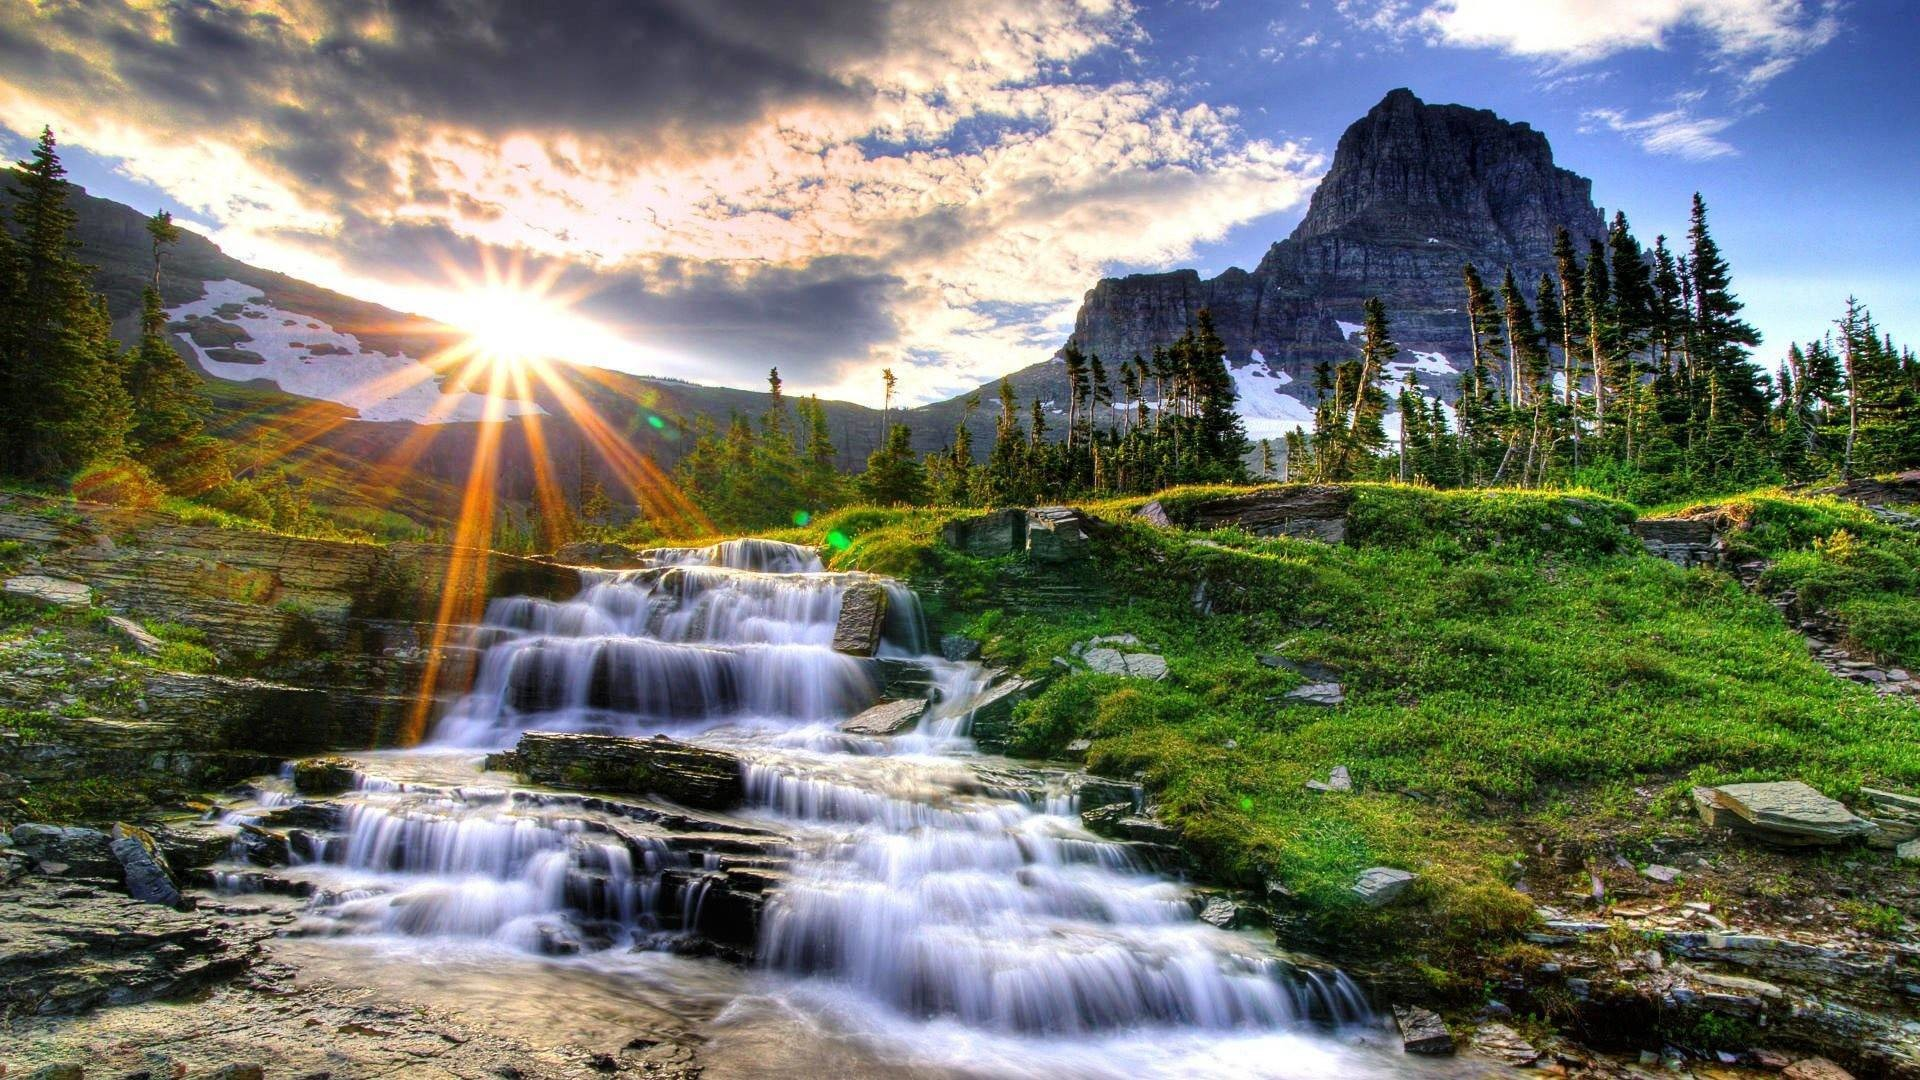 Res: 1920x1080, Water fall image nature wallpaper